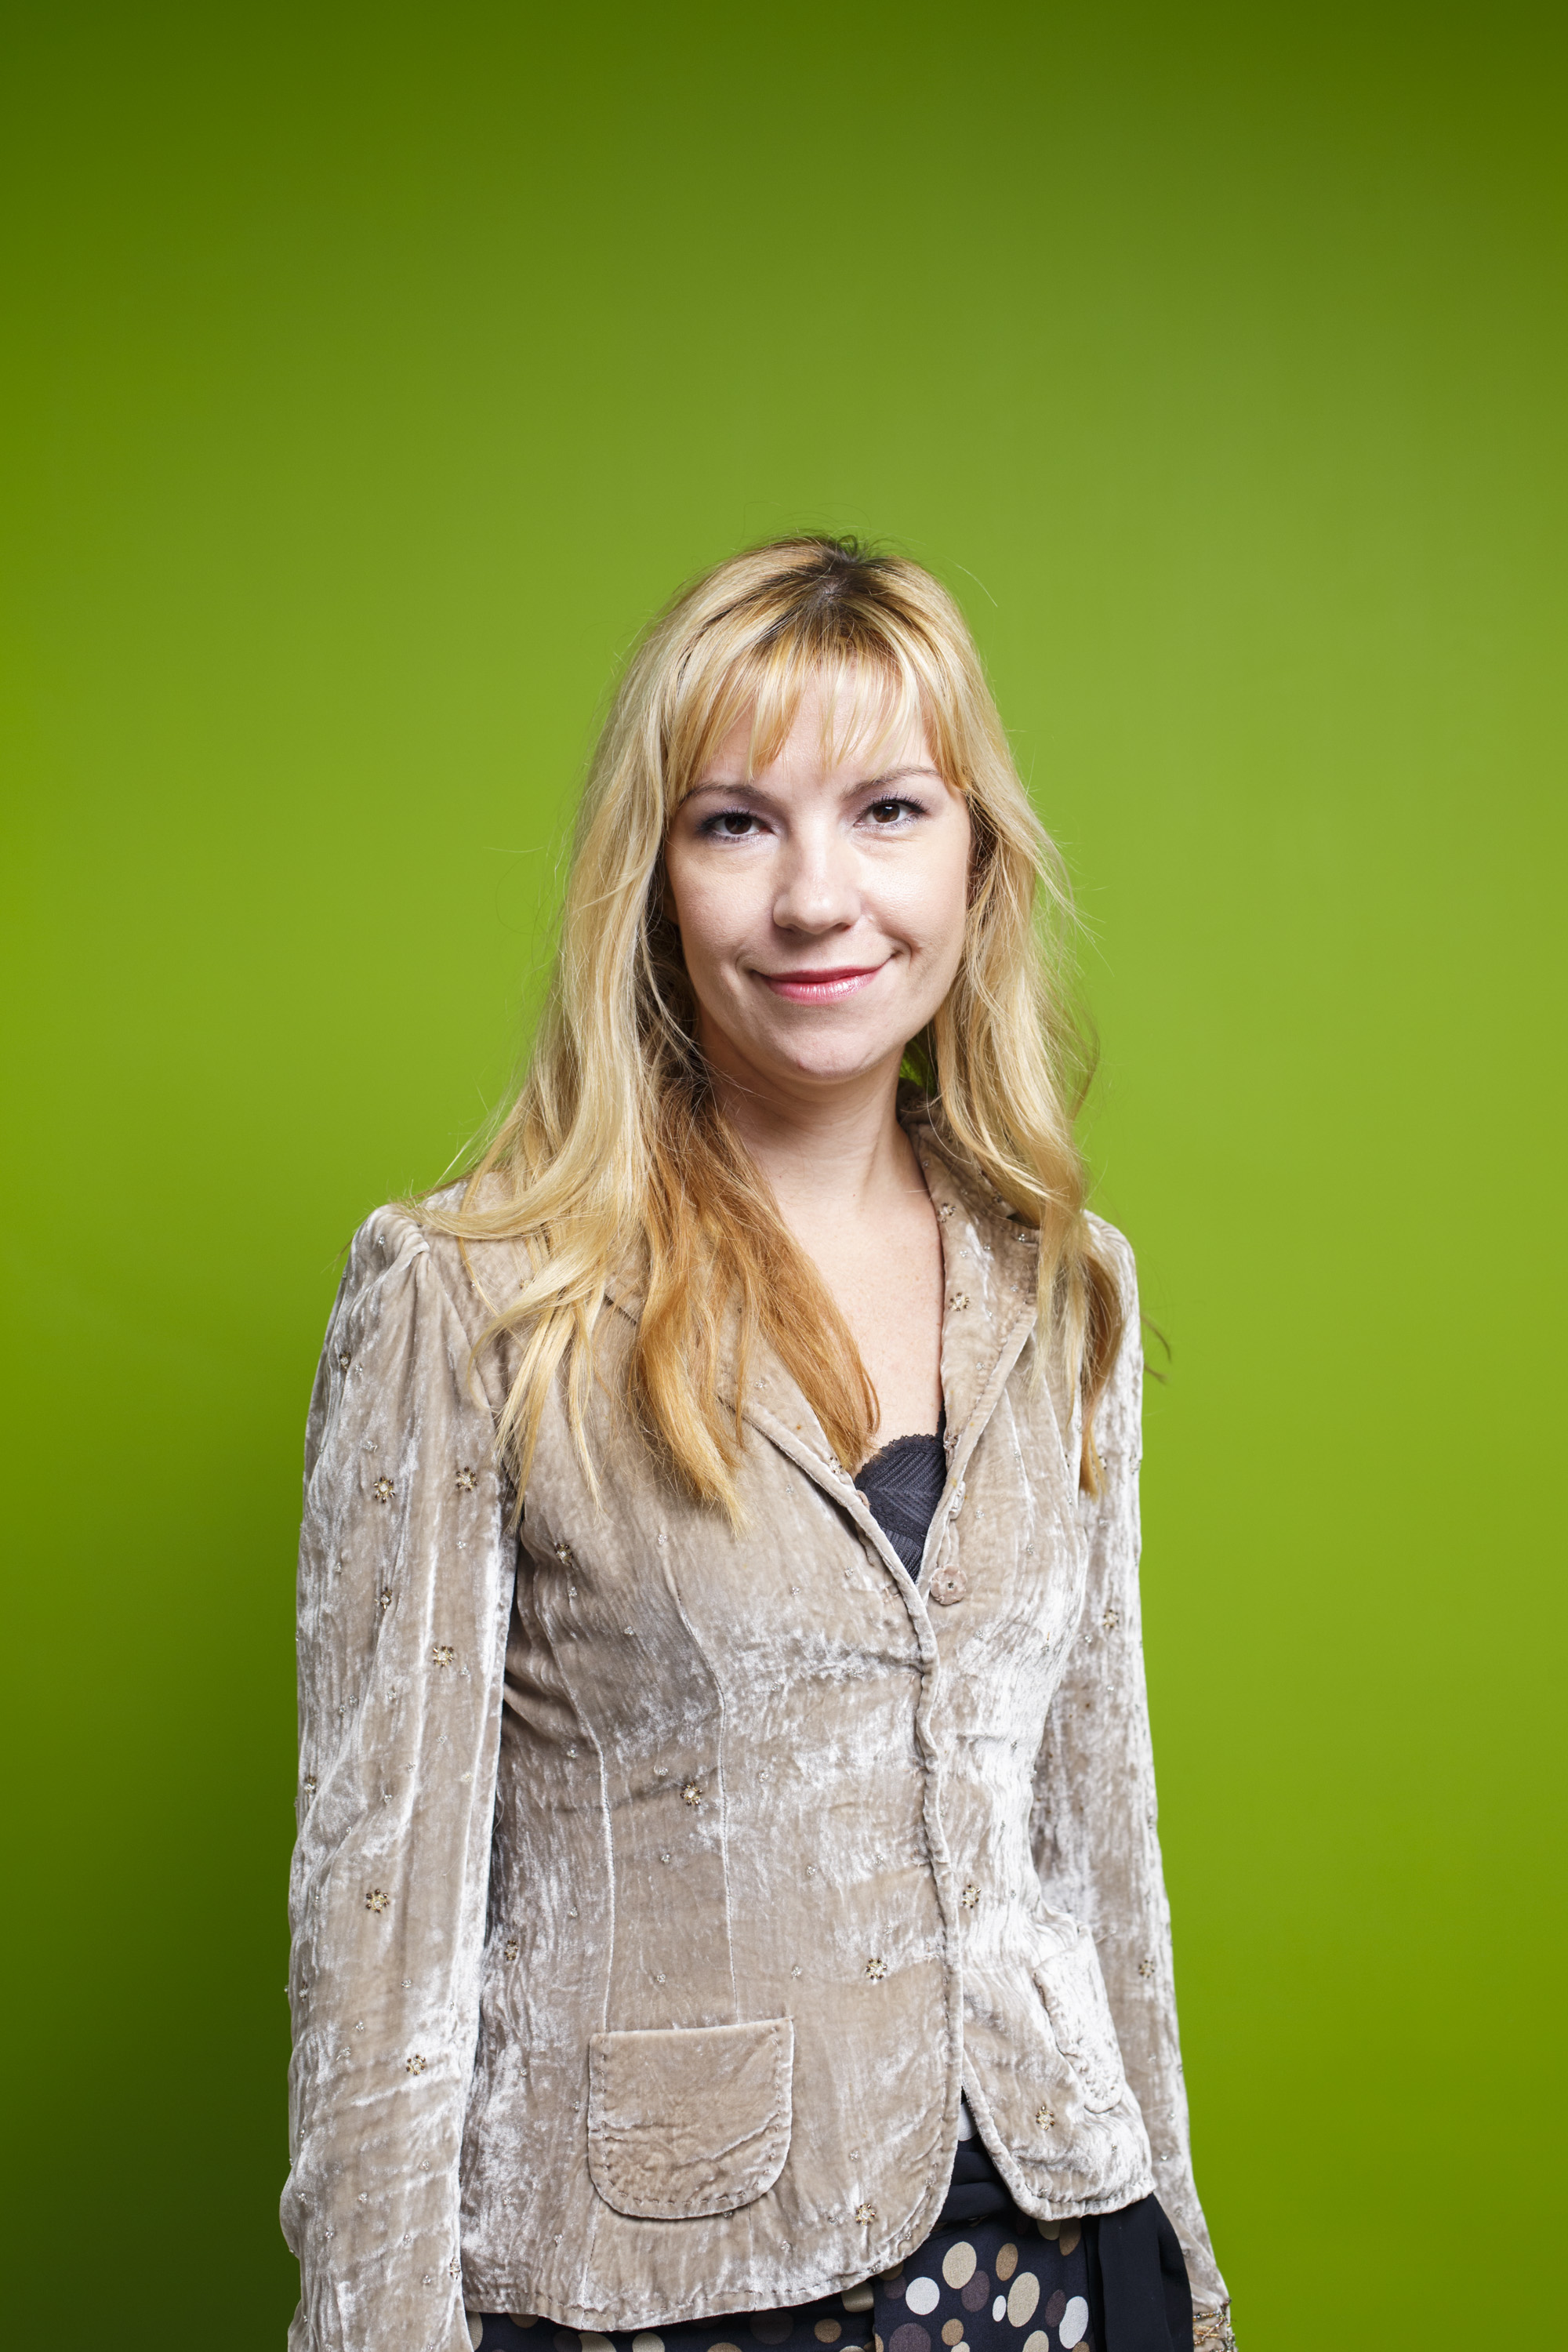 Natalia Shuman, Chief Operating Officer - North Asia of Kelly Services